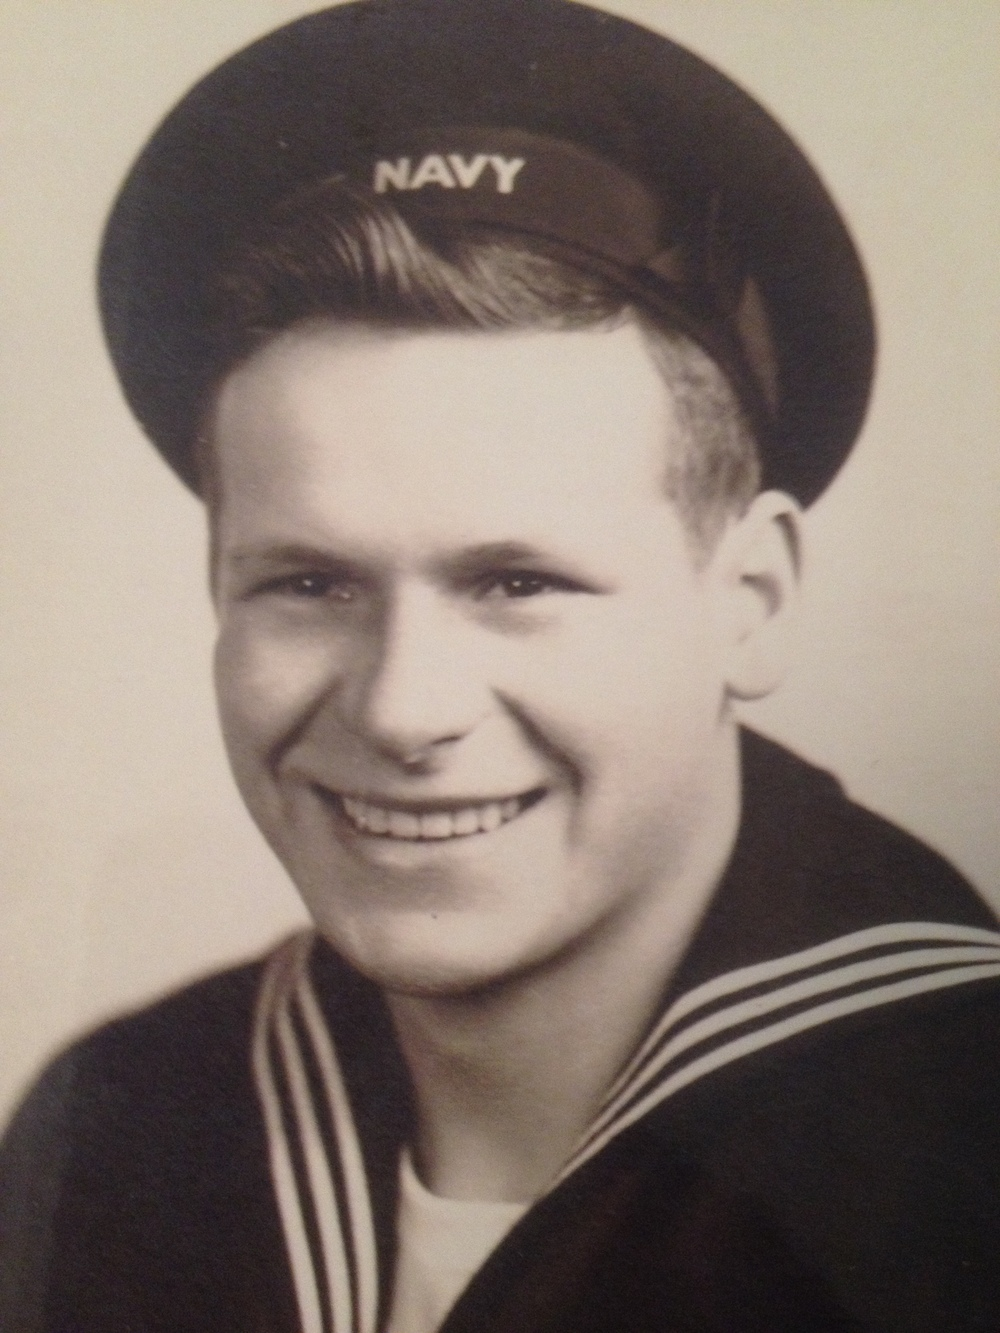 Gunner's Mate Rudy Rolenz in his official Navy photo.  Photo courtesy of Rudy Rolenz.